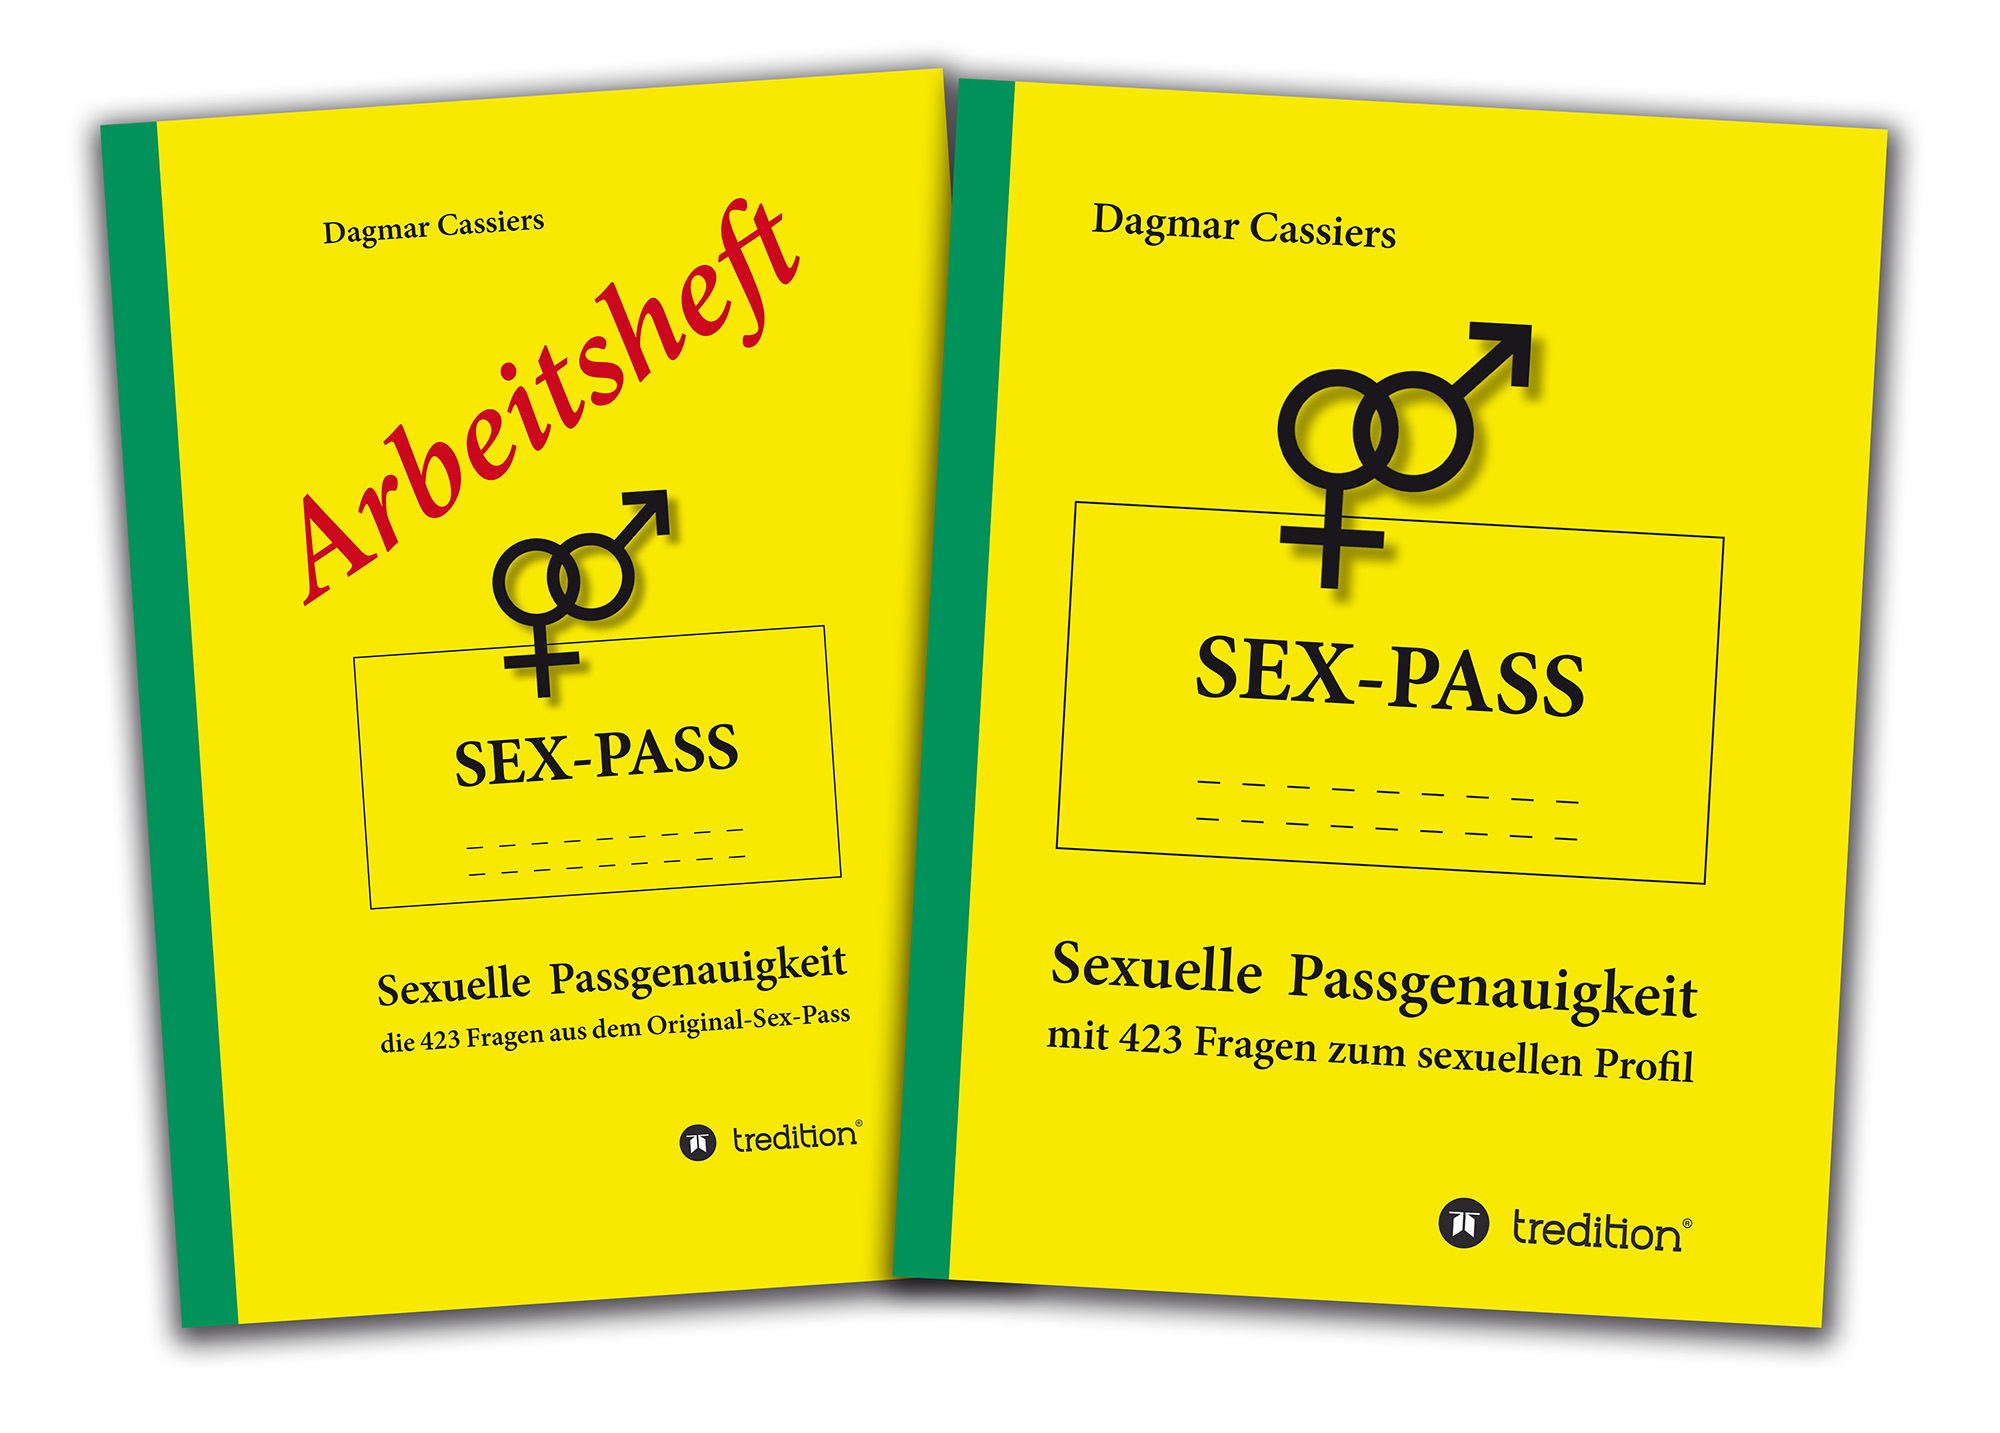 Sex-Pass Dagmar Cassiers